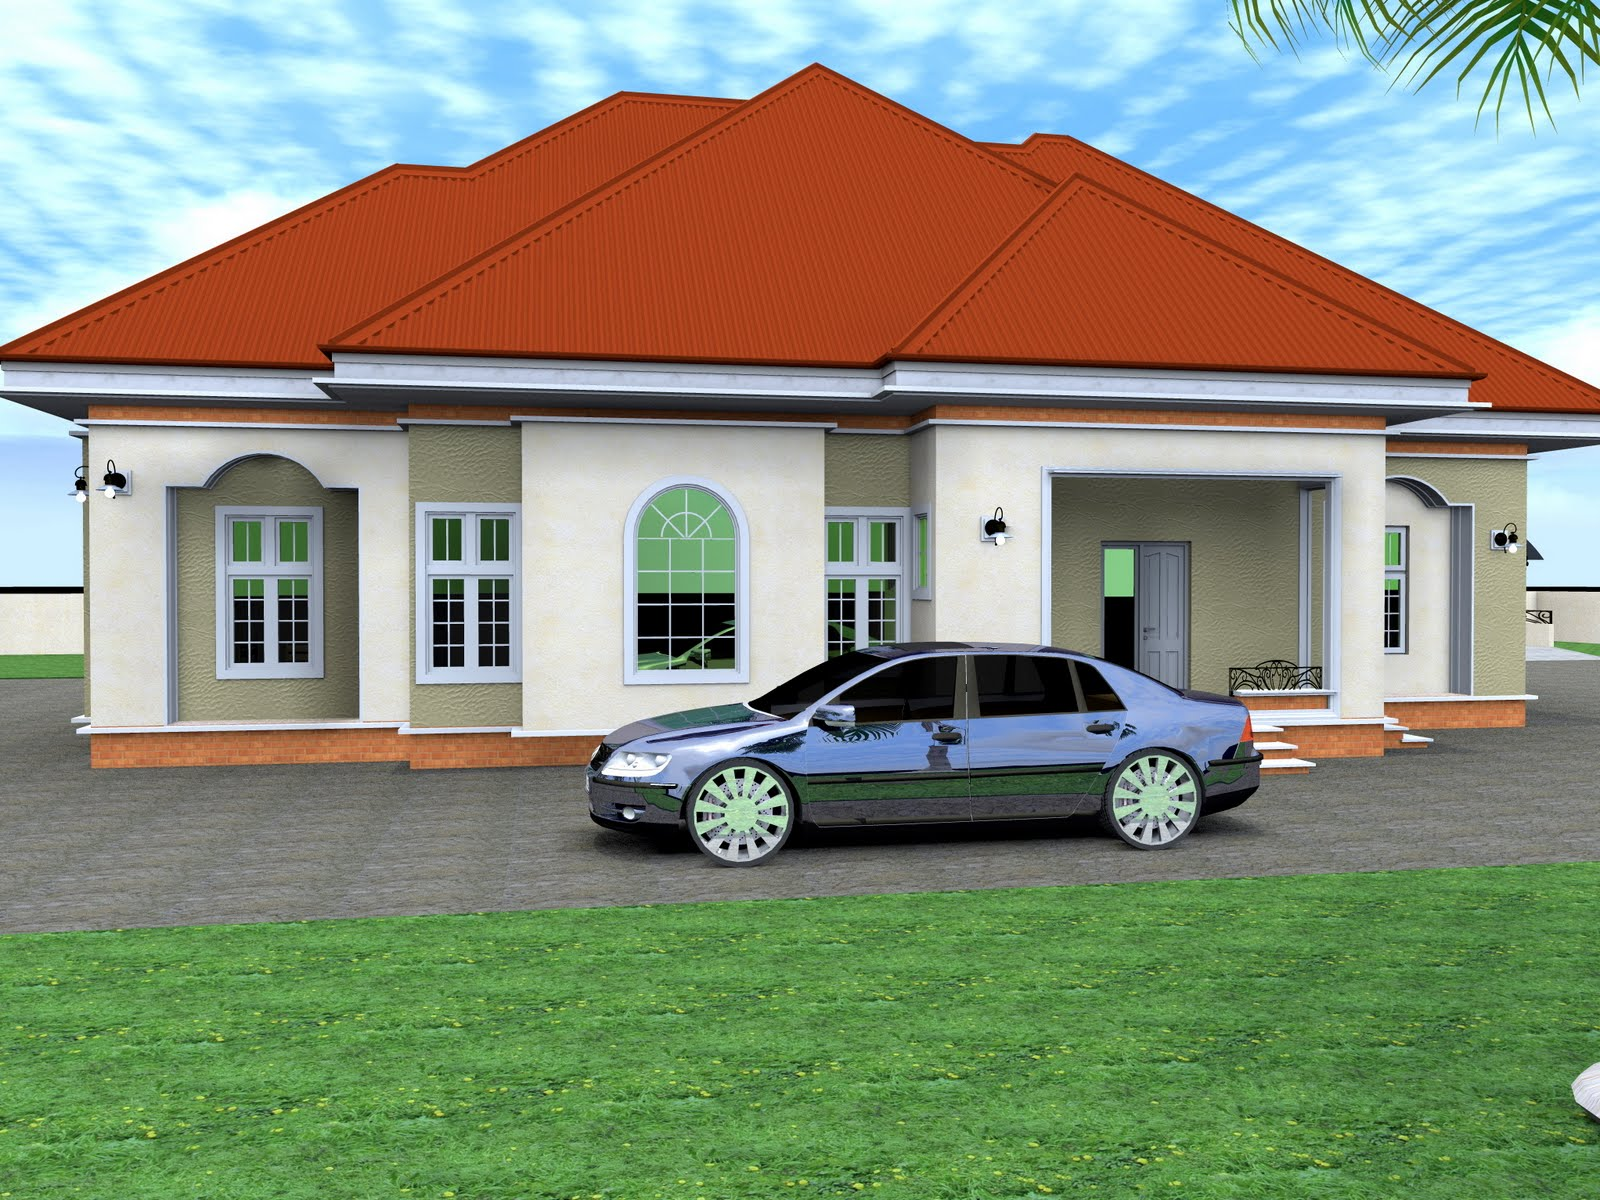 Residential homes and public designs 3 bedroom bungalow for 3 bedroom bungalow house designs